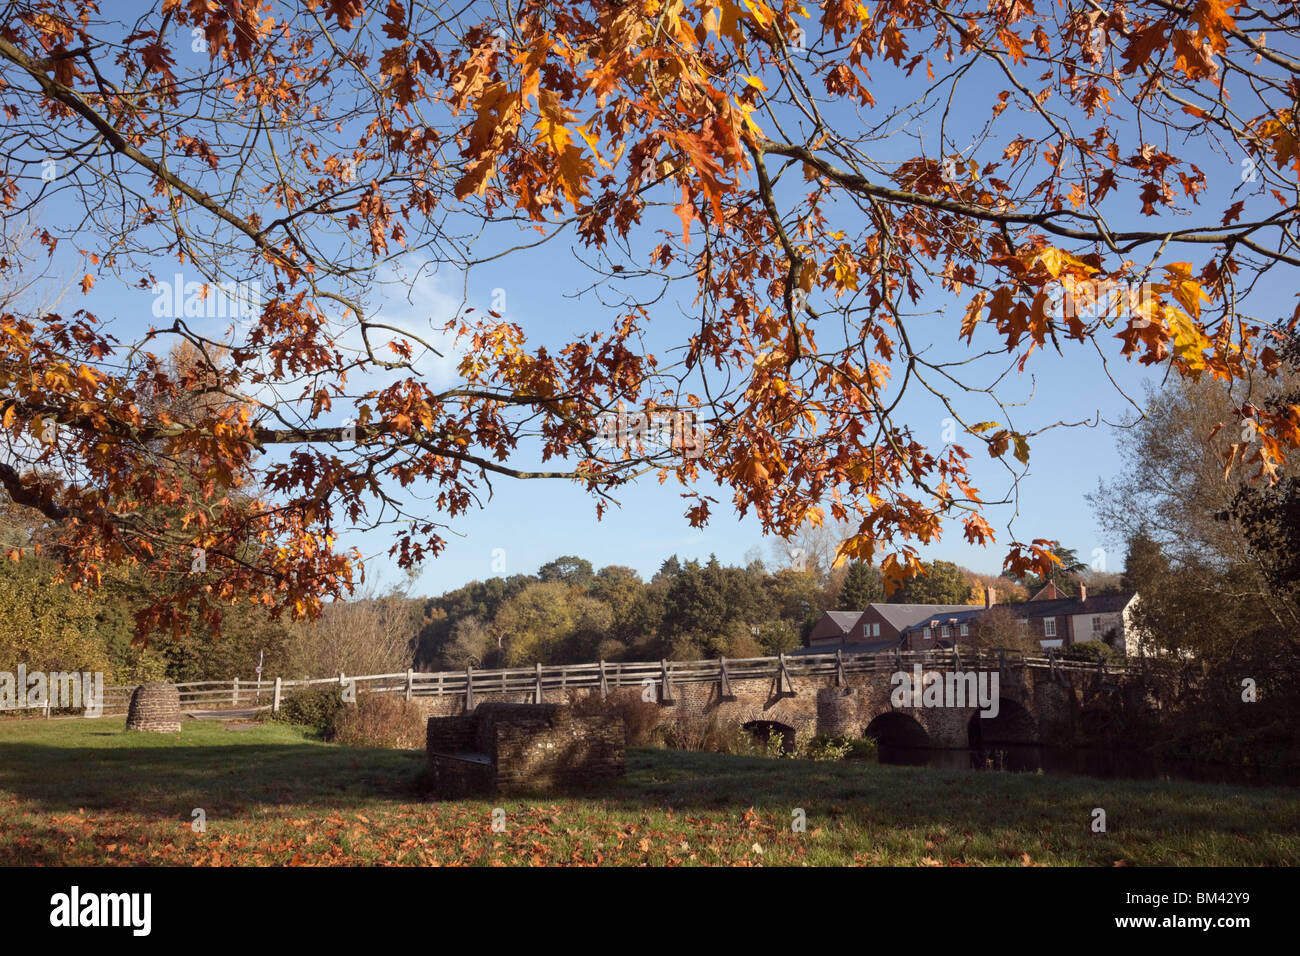 Tilford Surrey England UK. River Wey and medieval old east bridge in historic village in autumn - Stock Image